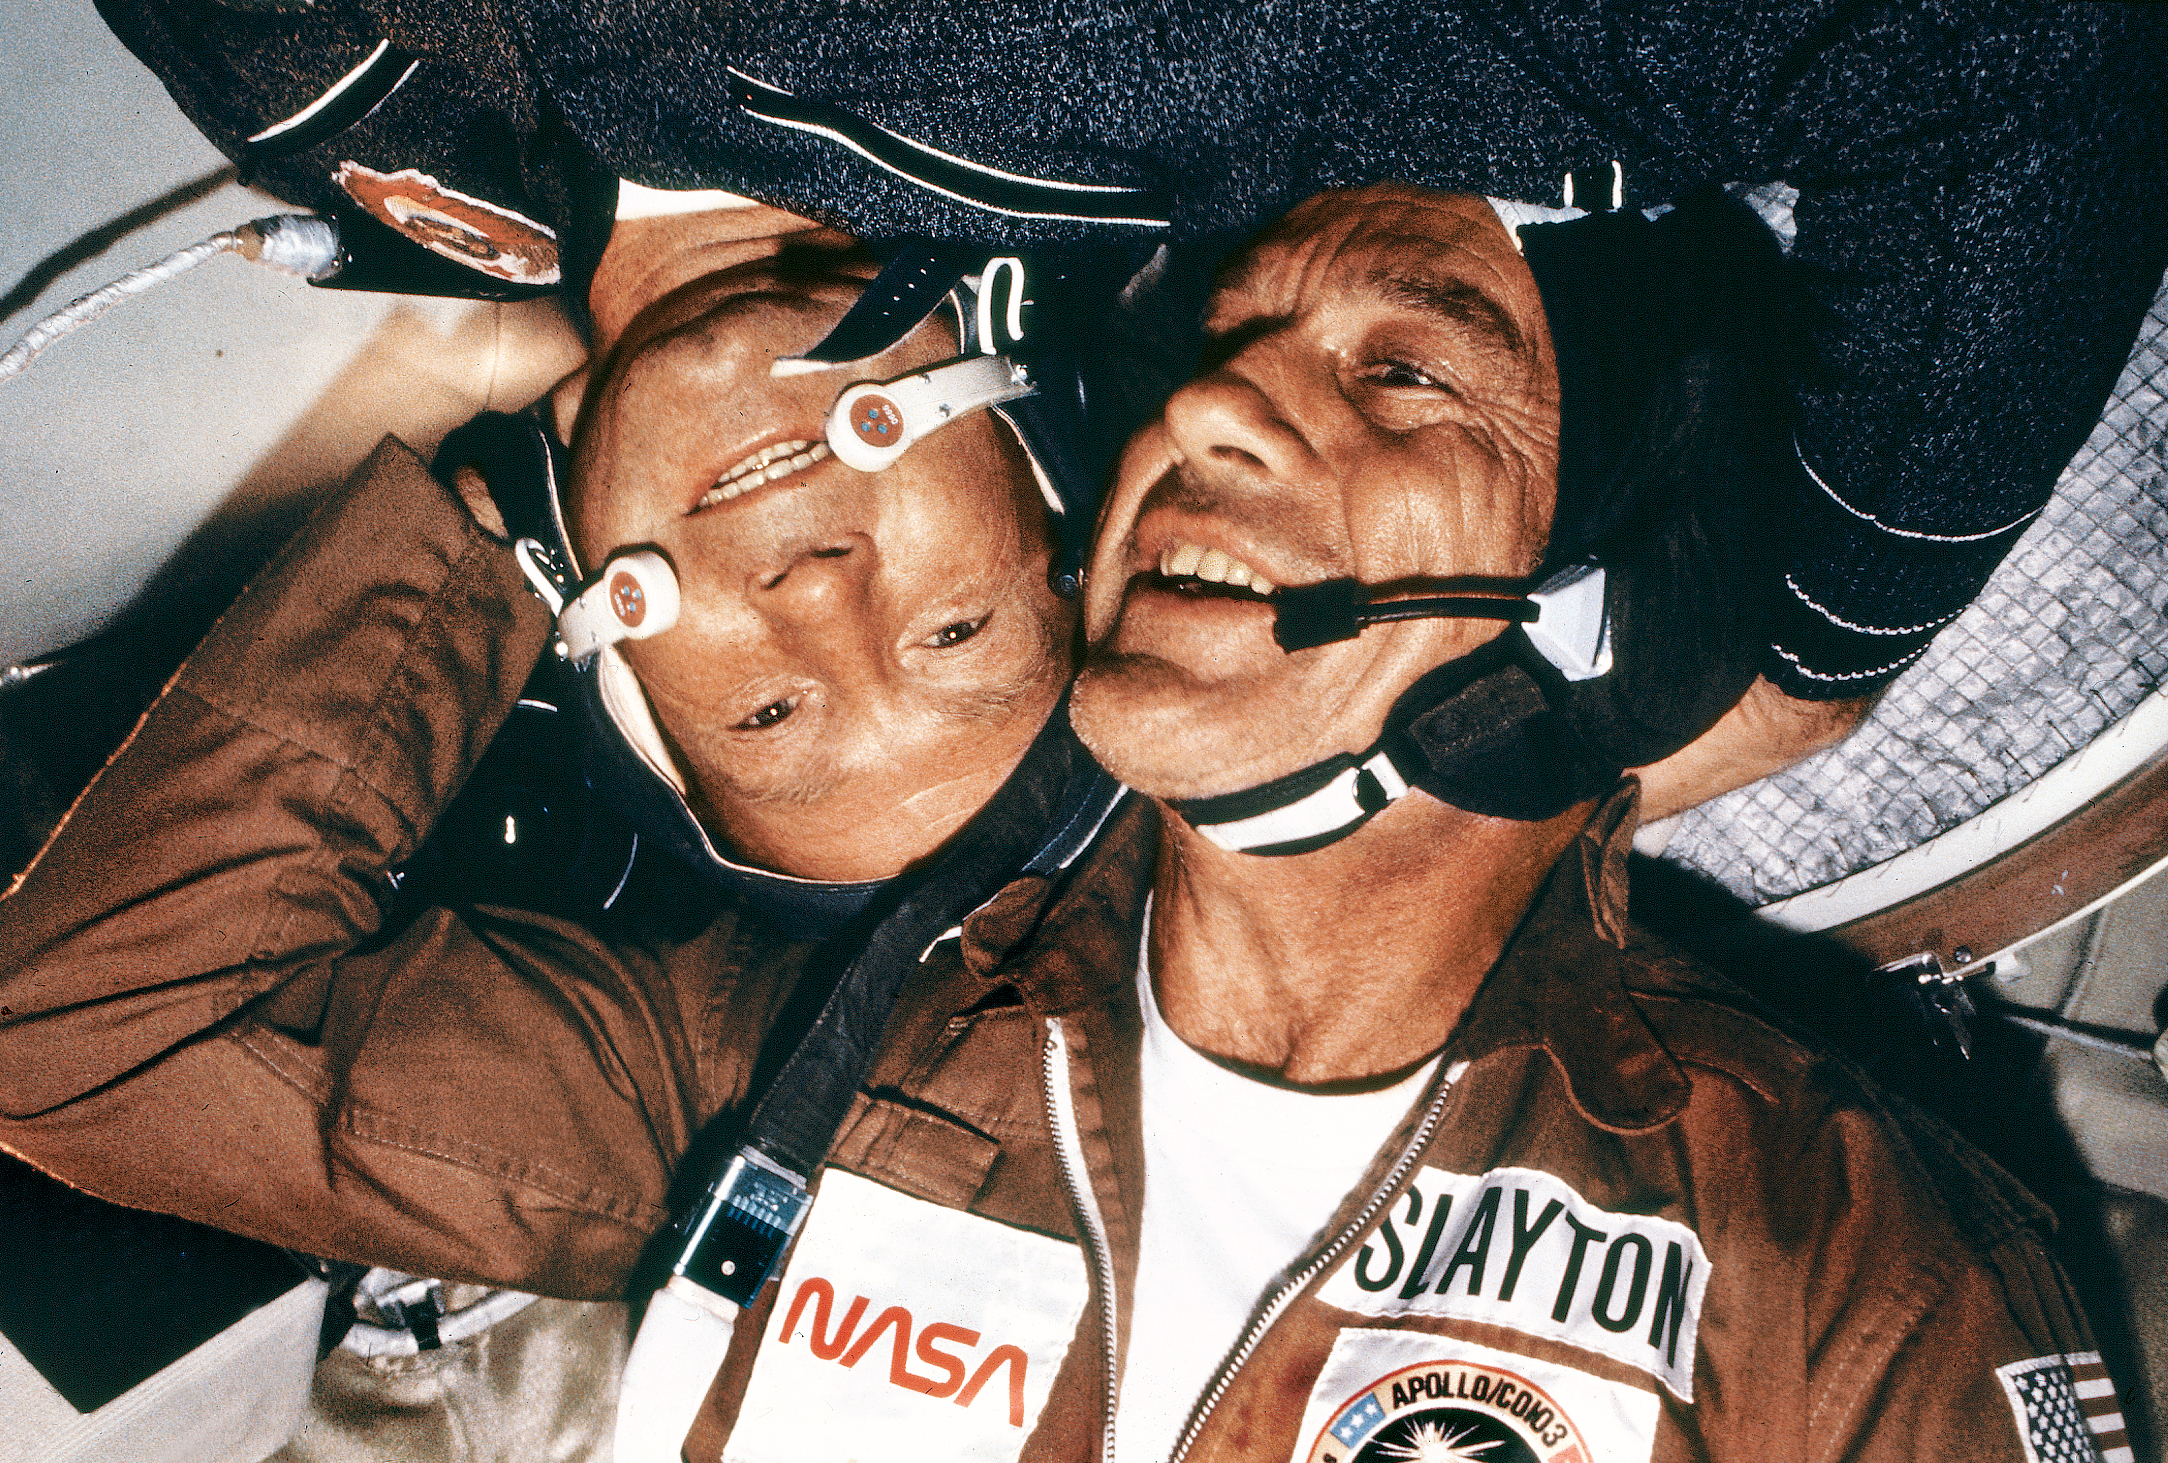 American astronaut Deke Slayton and Russian cosmonaut Alexei Leonov during the US-Soviet Apollo-Soyuz linkup.